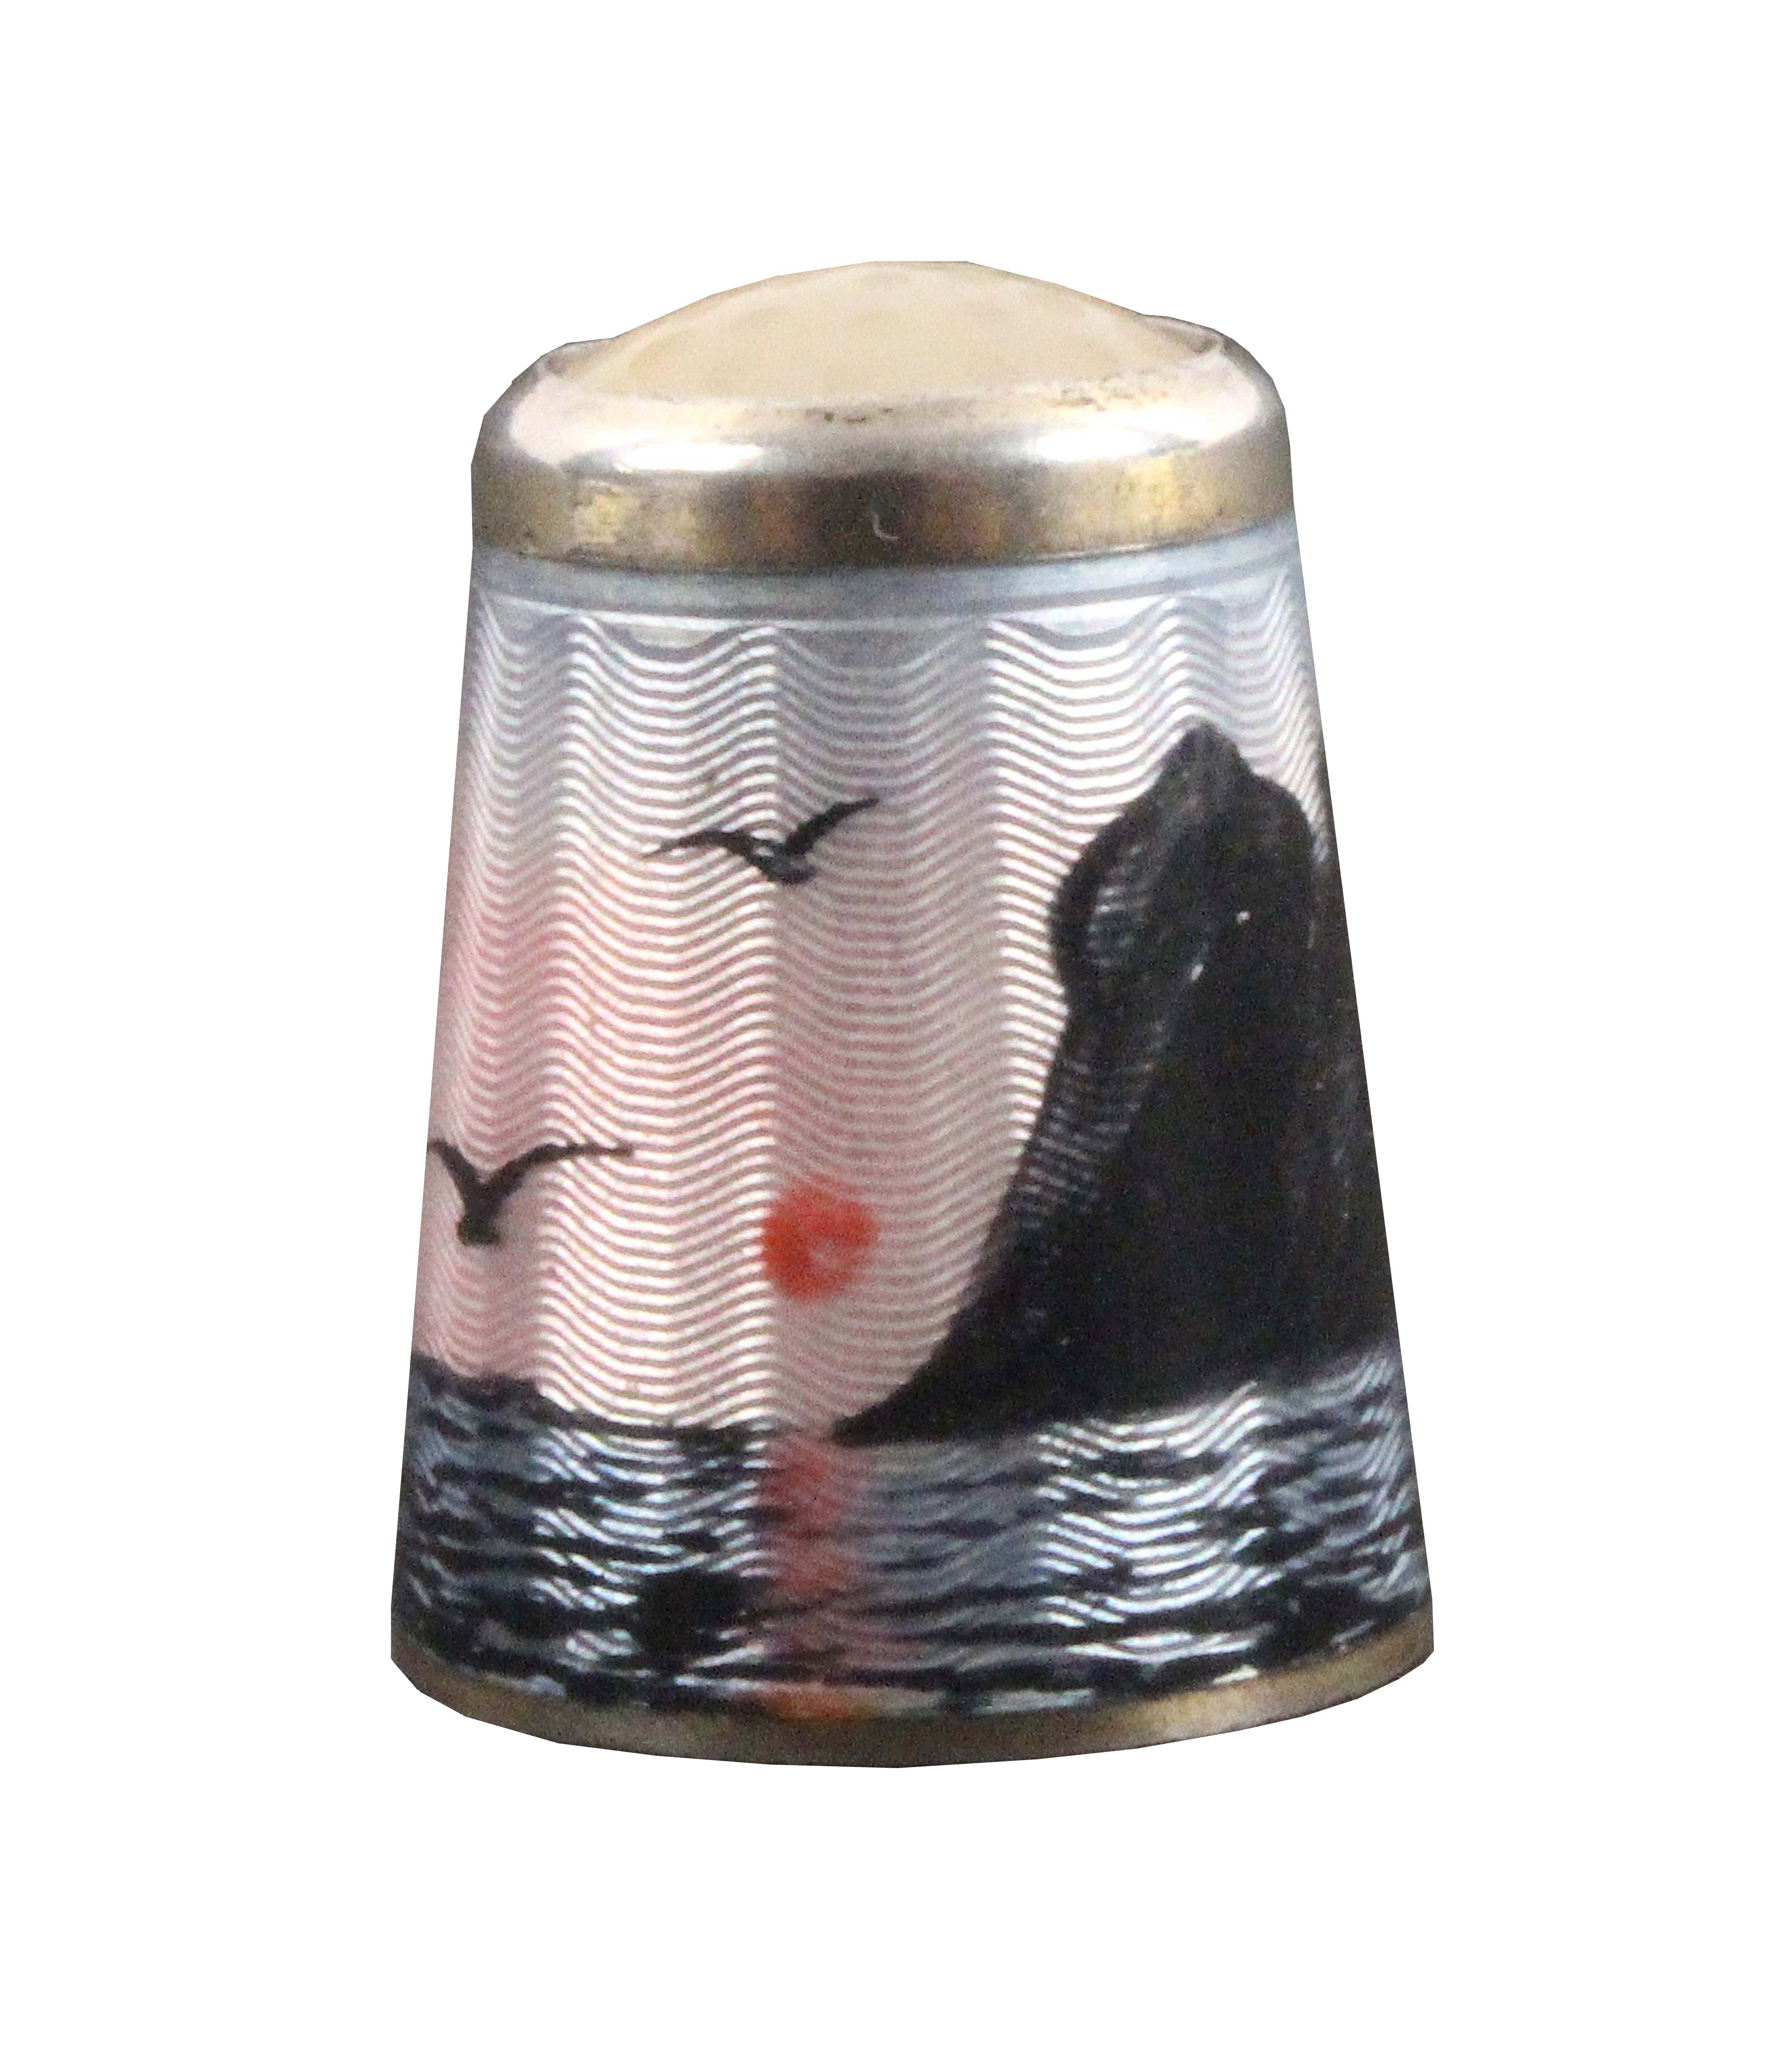 A Norwegian silver and enamel thimble, depicting North Cape with birds in flight over waves below